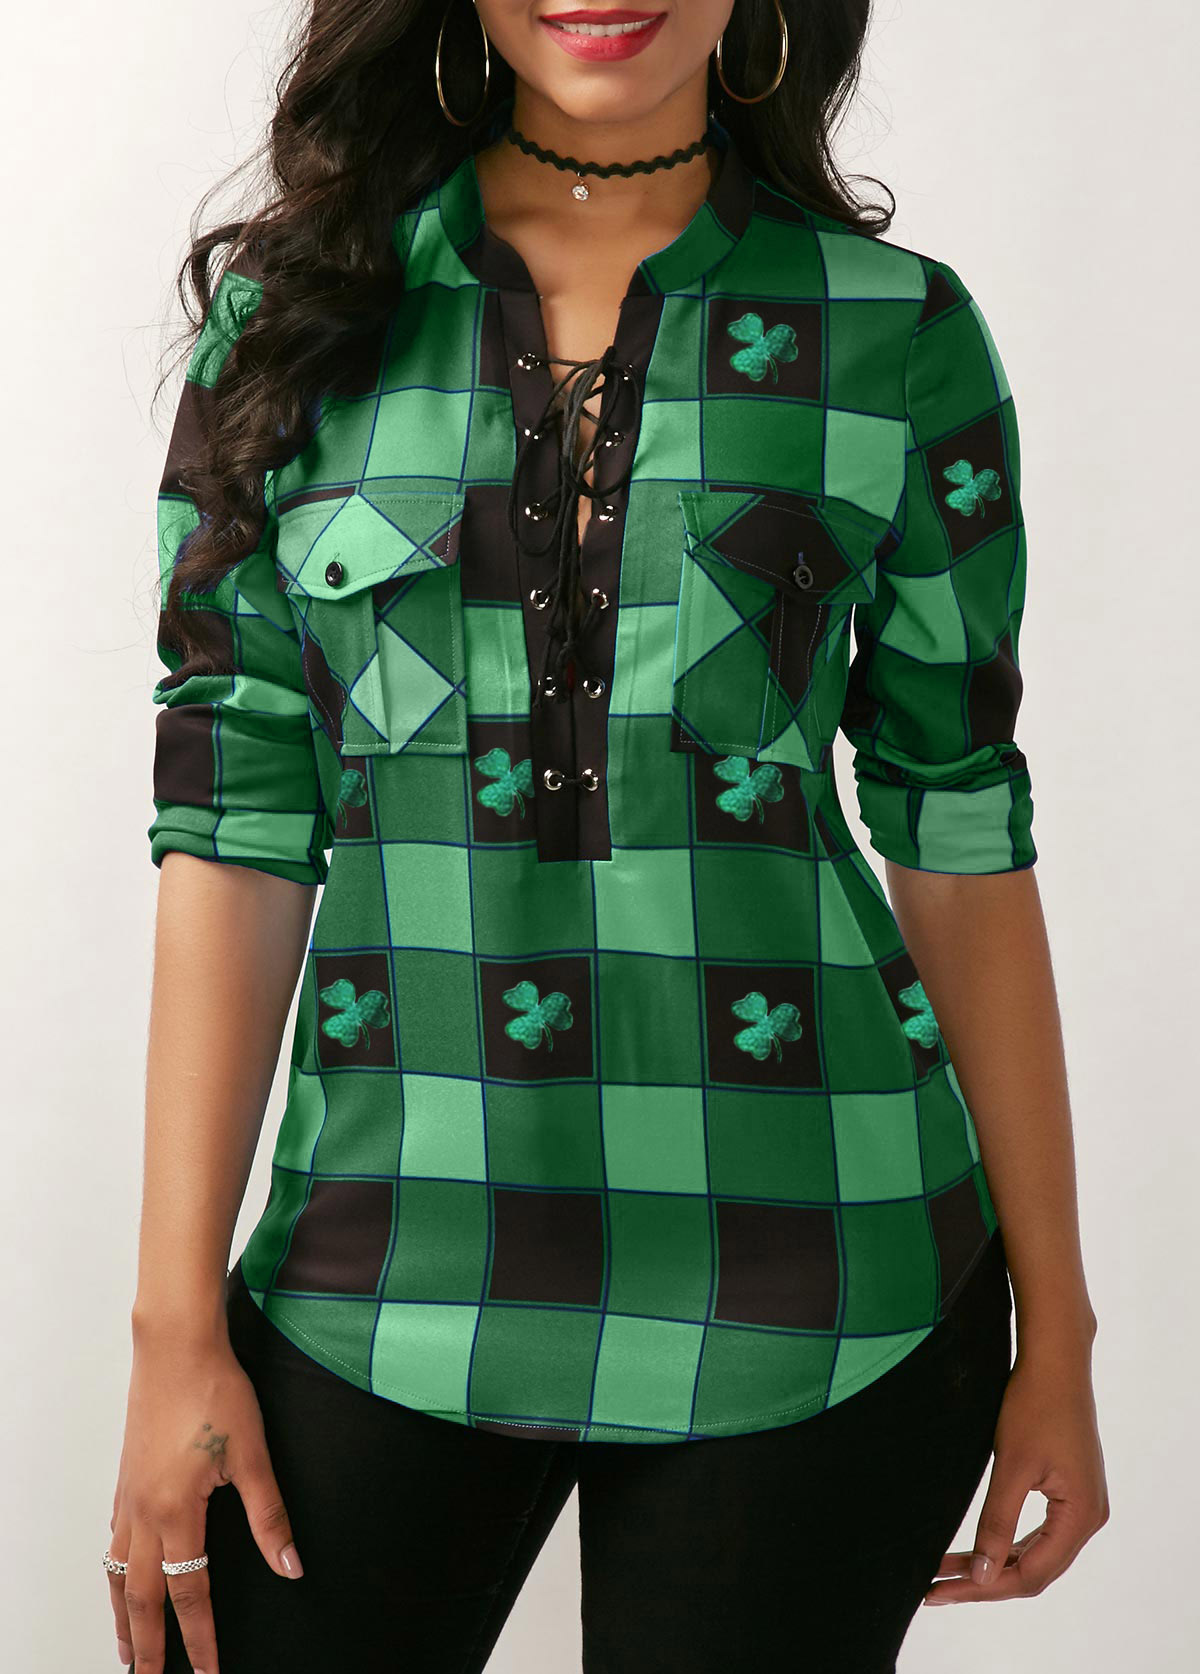 Lace Up Front Plaid Print Green ST Patricks Day Blouse